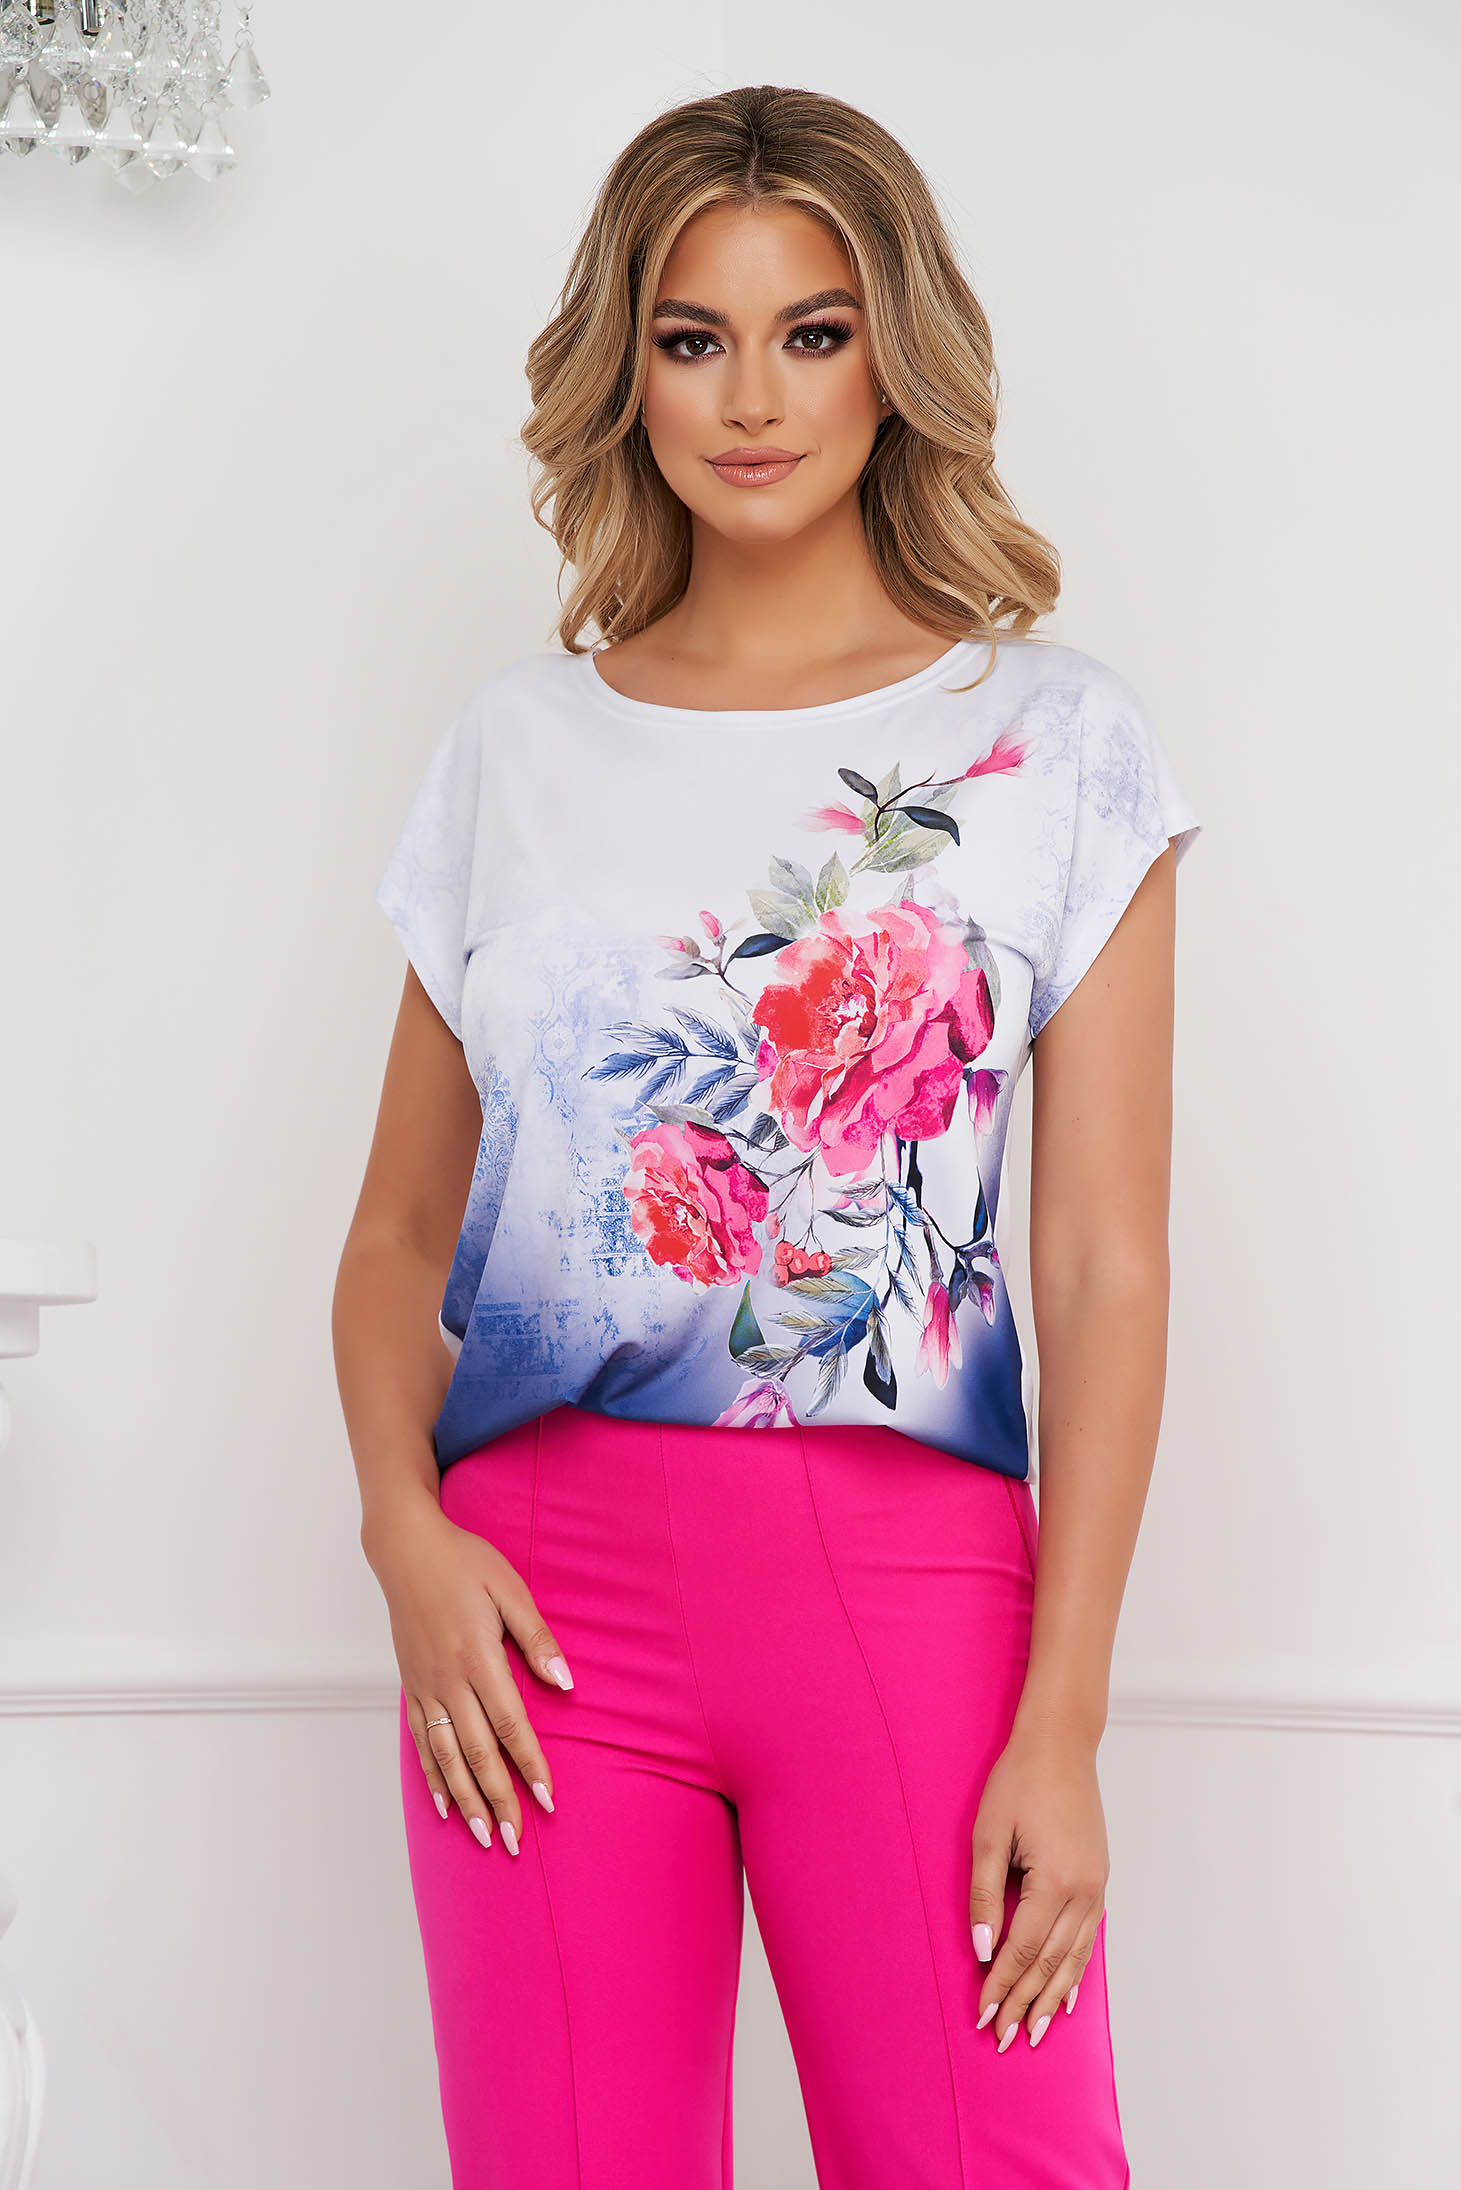 Women`s blouse with floral print from elastic and fine fabric loose fit with rounded cleavage